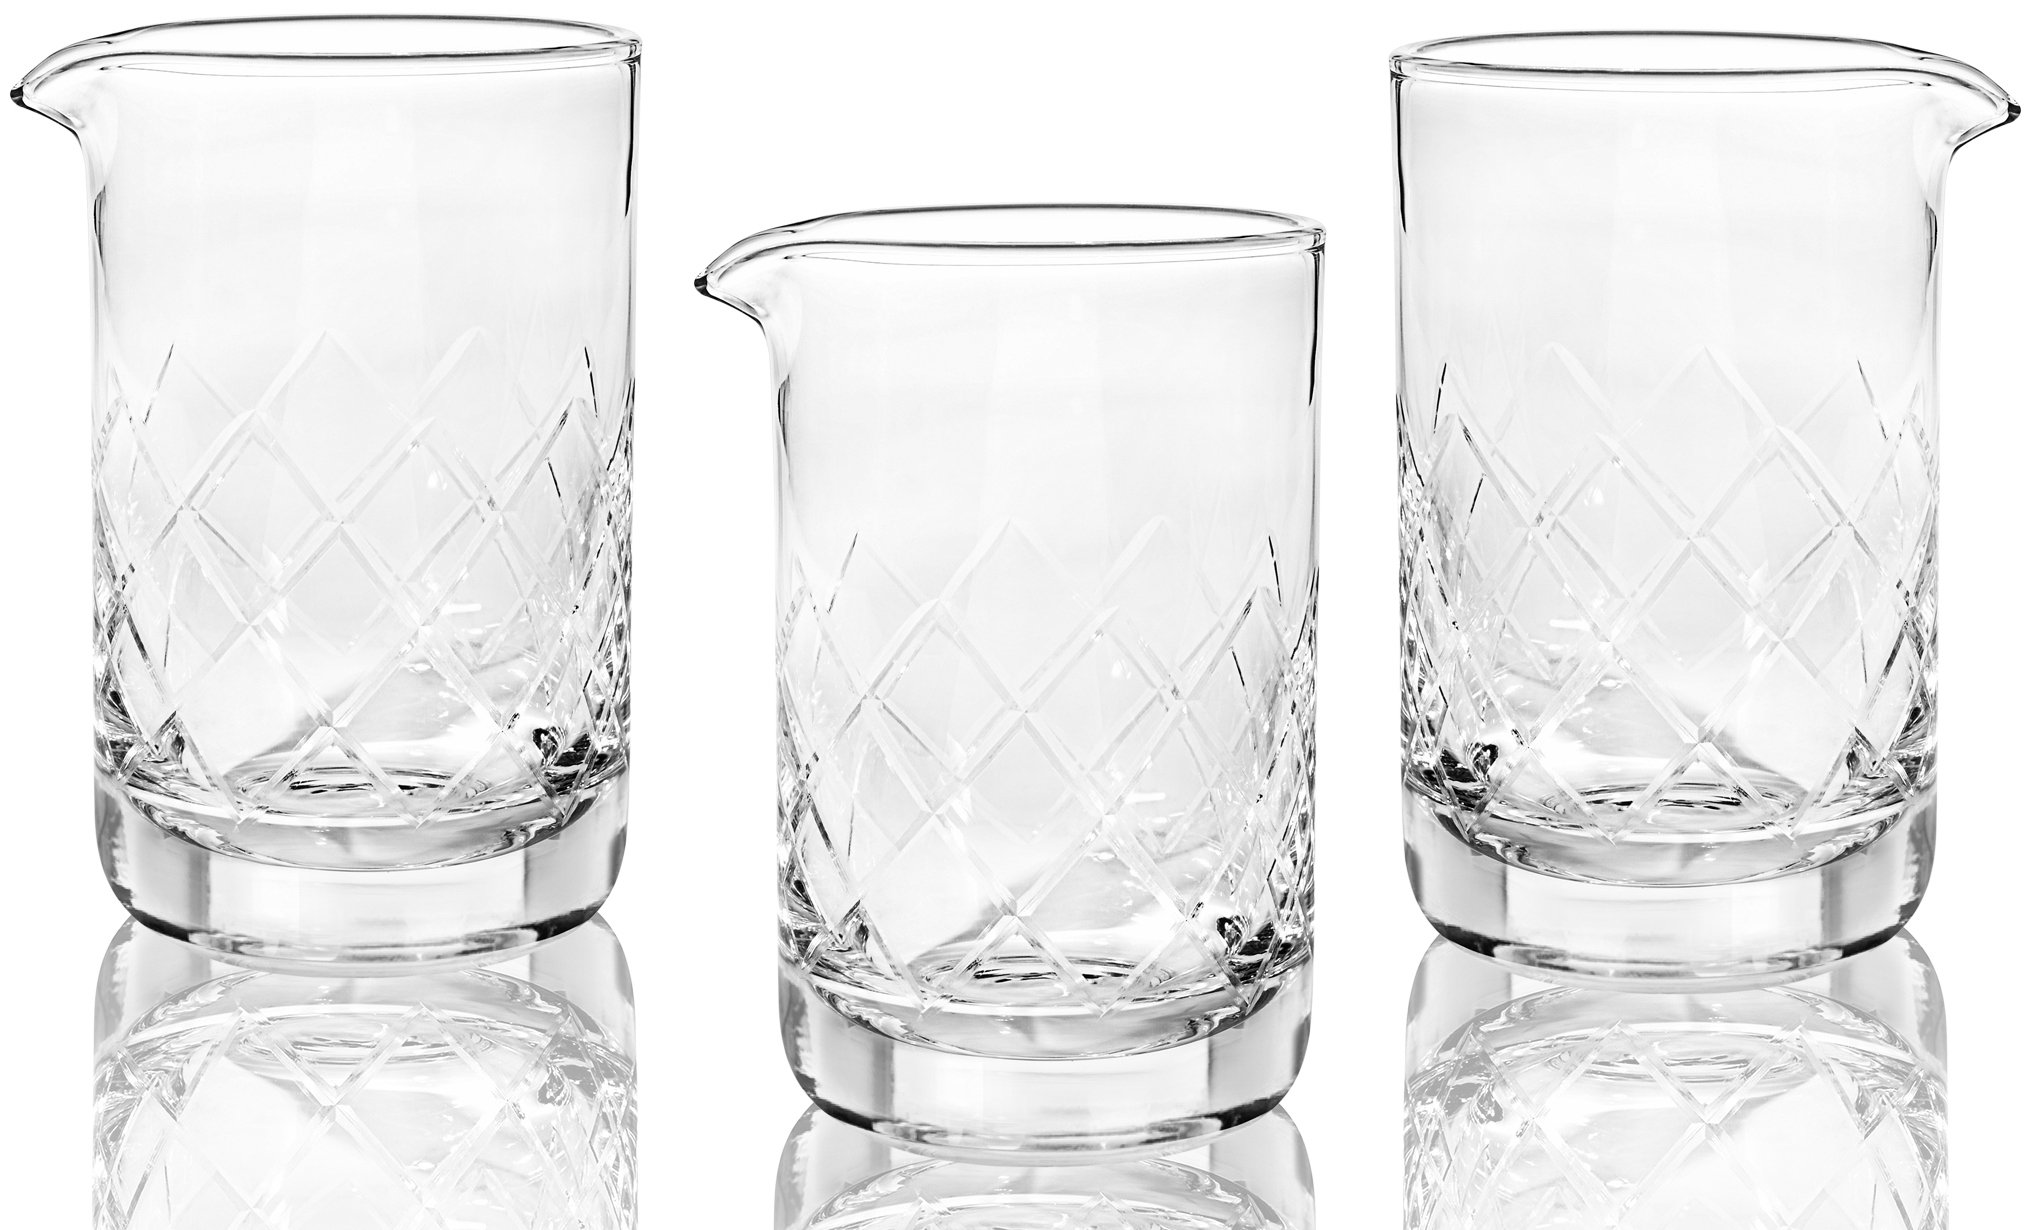 Crystal Cocktail Mixing Glass (Set of 3) - Thick Bottom 17oz 500ml Cocktail Glass - Choice for Amateurs & Pros - Ideal Gift